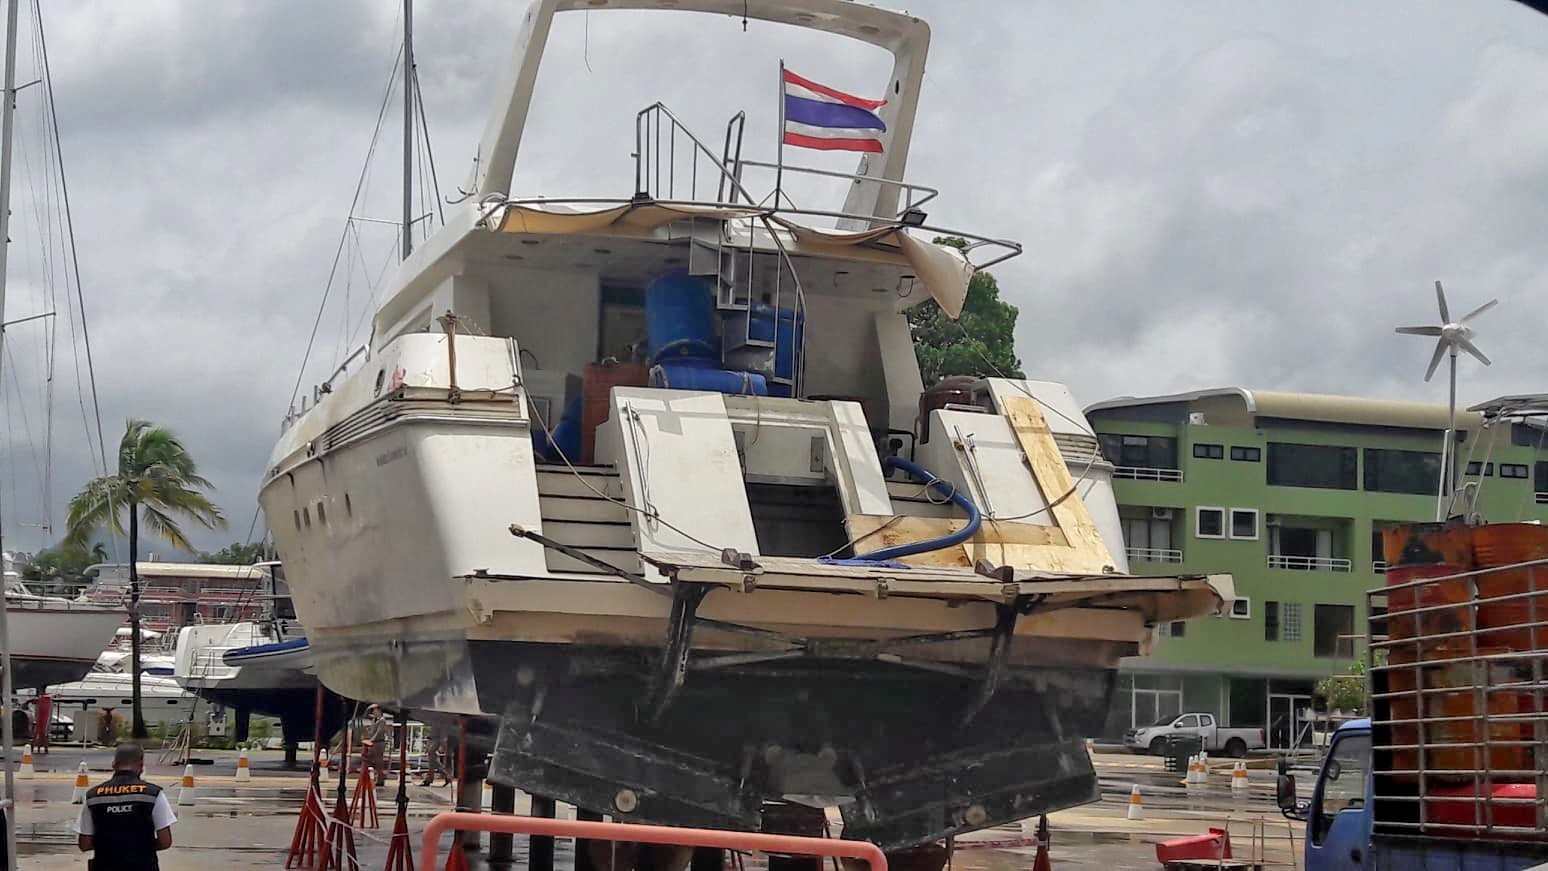 'Serenata' captain and company manager charged | The Thaiger